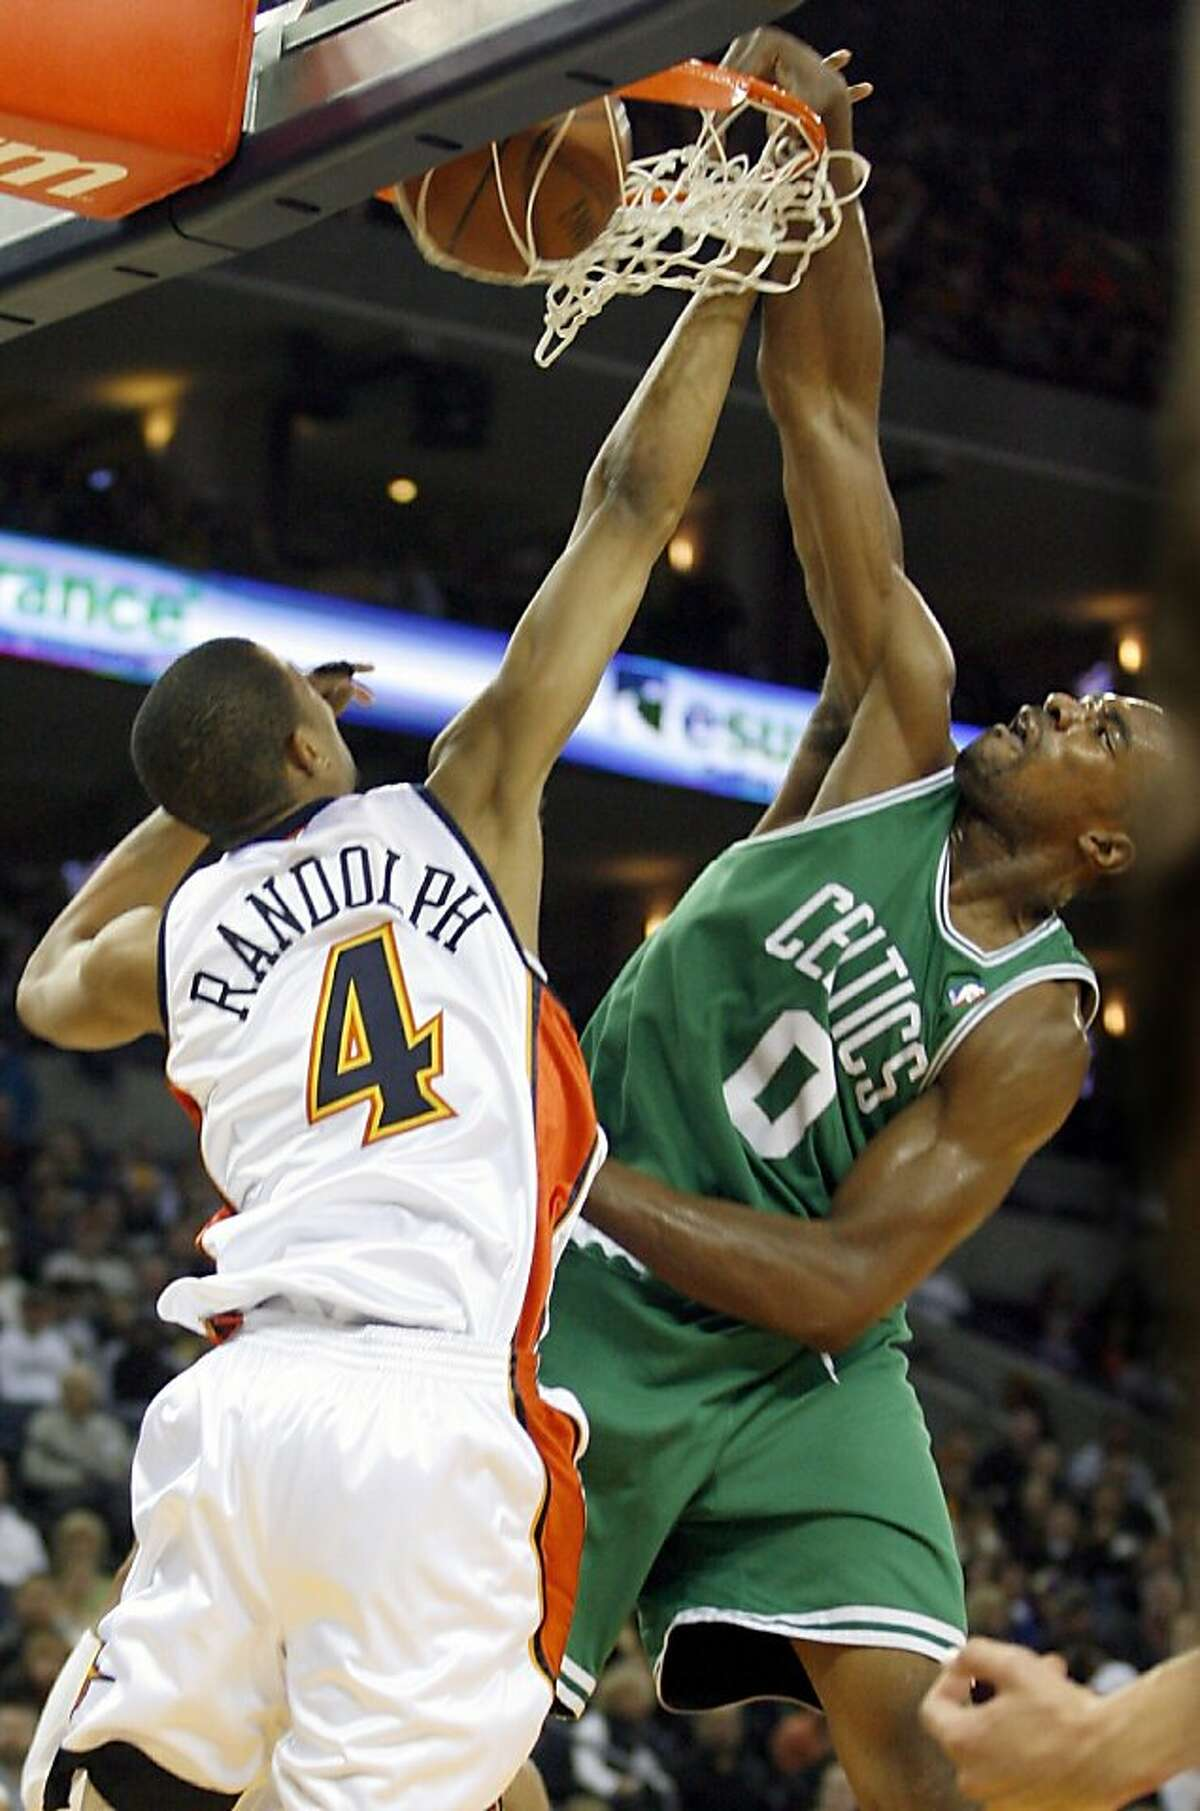 The Boston Celtics' Leon Powe dunks over the Golden State Warriors' Anthony Randolph (4) in the first half of an NBA basketball game, Dec. 26, 2008, in Oakland, Calif. (AP Photo/Dino Vournas)